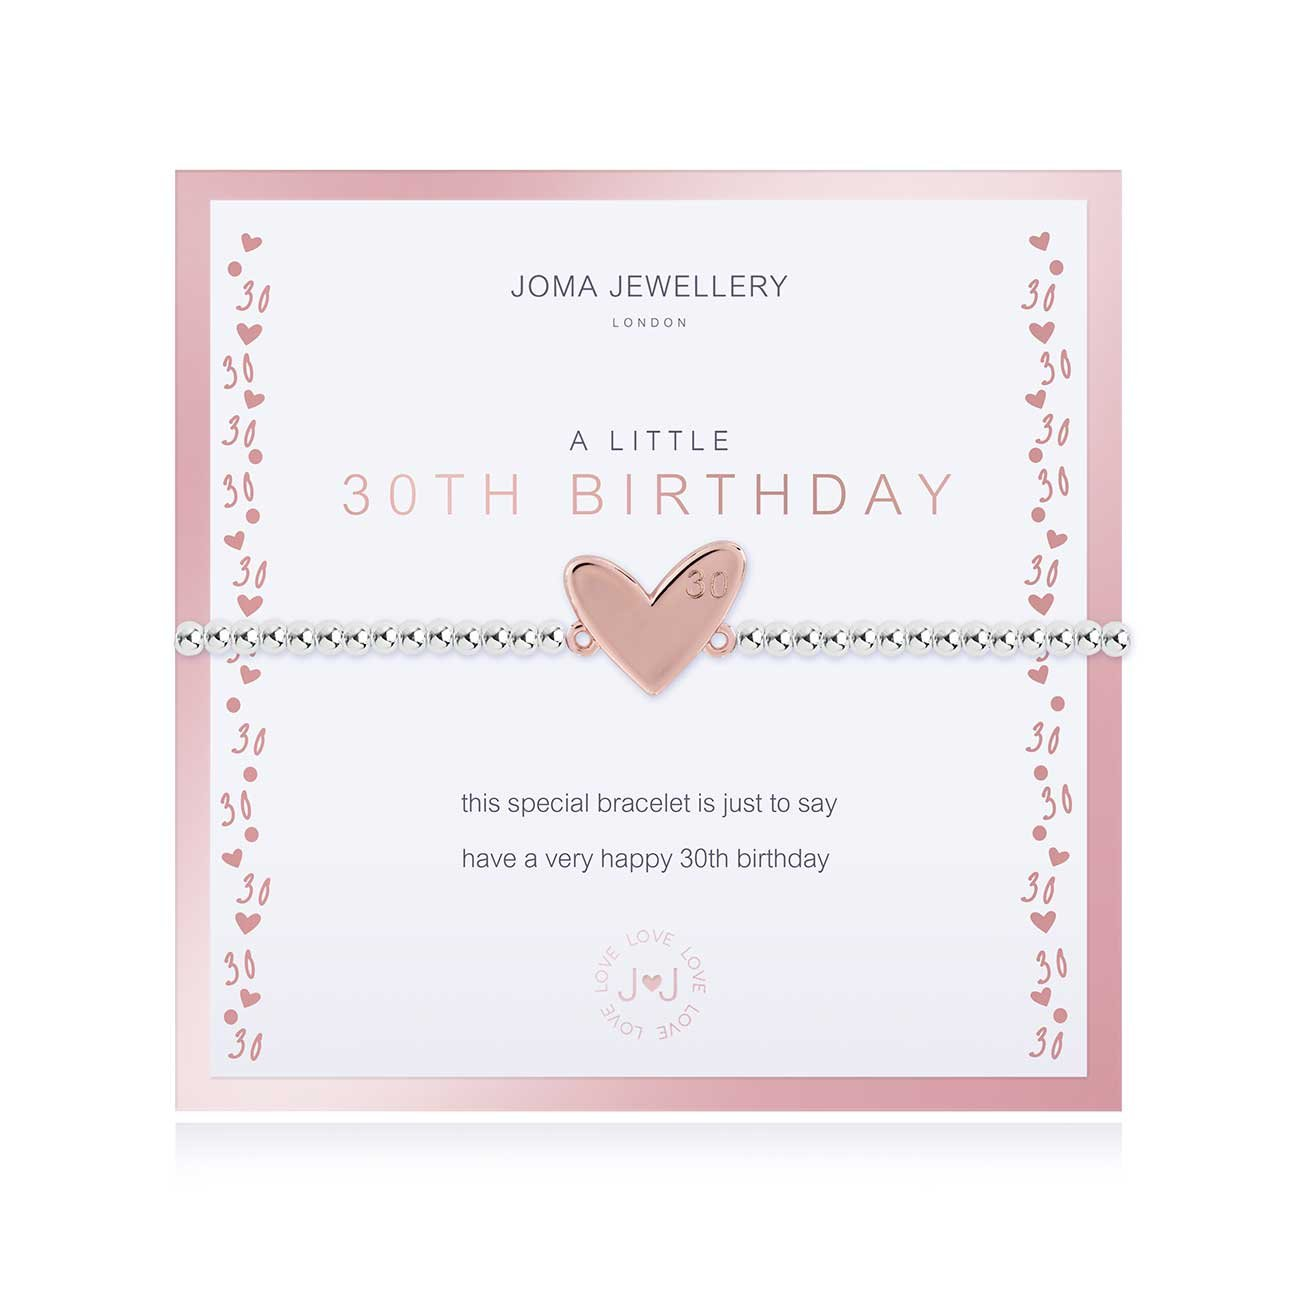 Joma Jewellery Boxed a little 30th Birthday